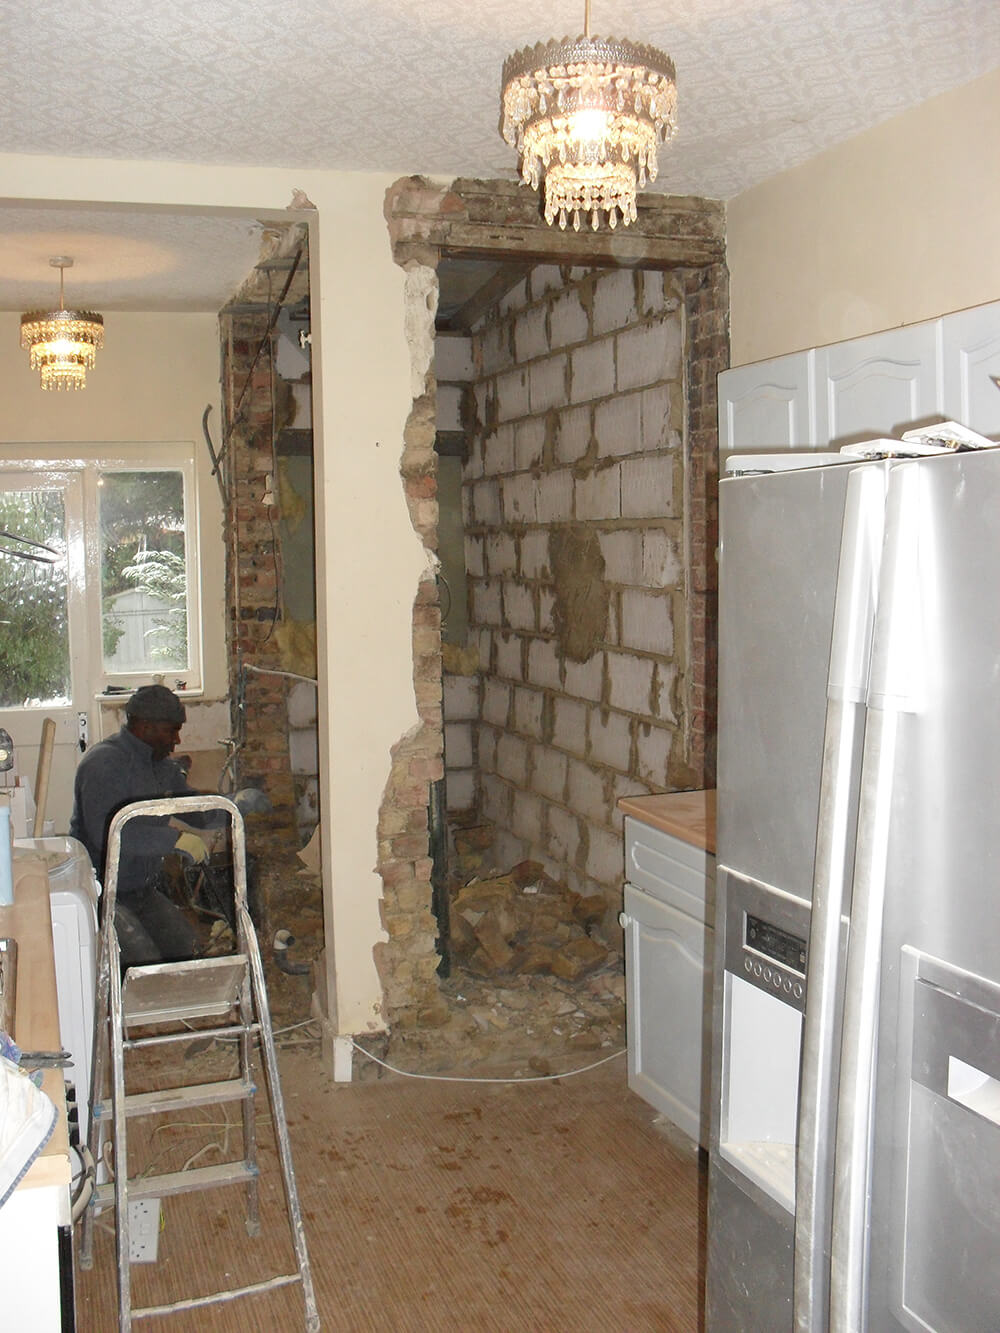 interior of a home during refurbishing